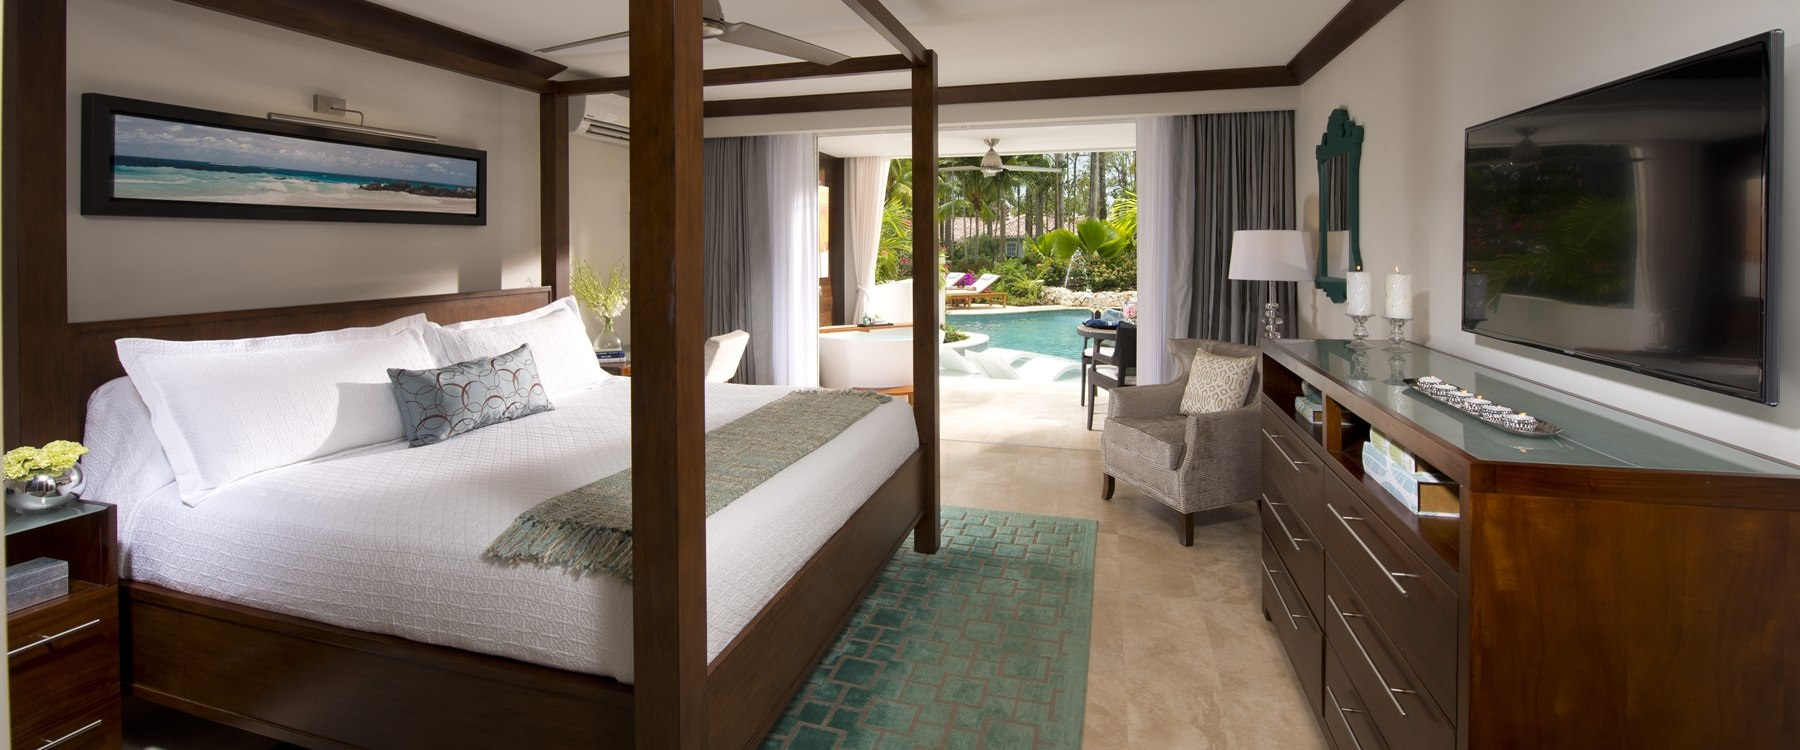 Crystal Lagoon Swim Up Bedroom at Sandals, Barbados